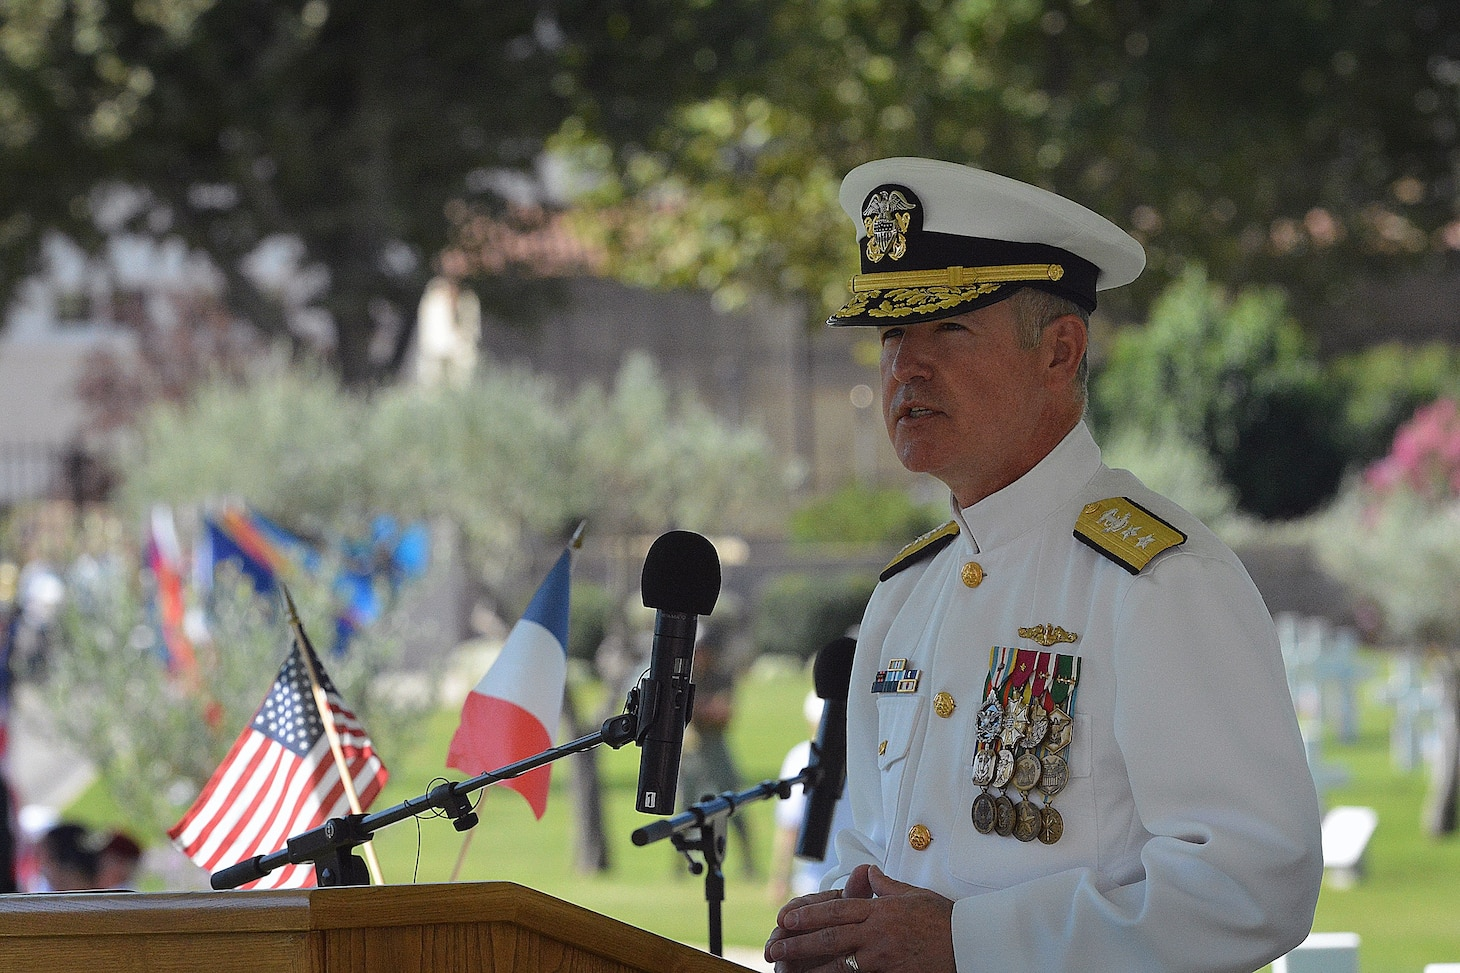 U.S. Naval Forces Europe-Africa Chief of Staff Commemorates the